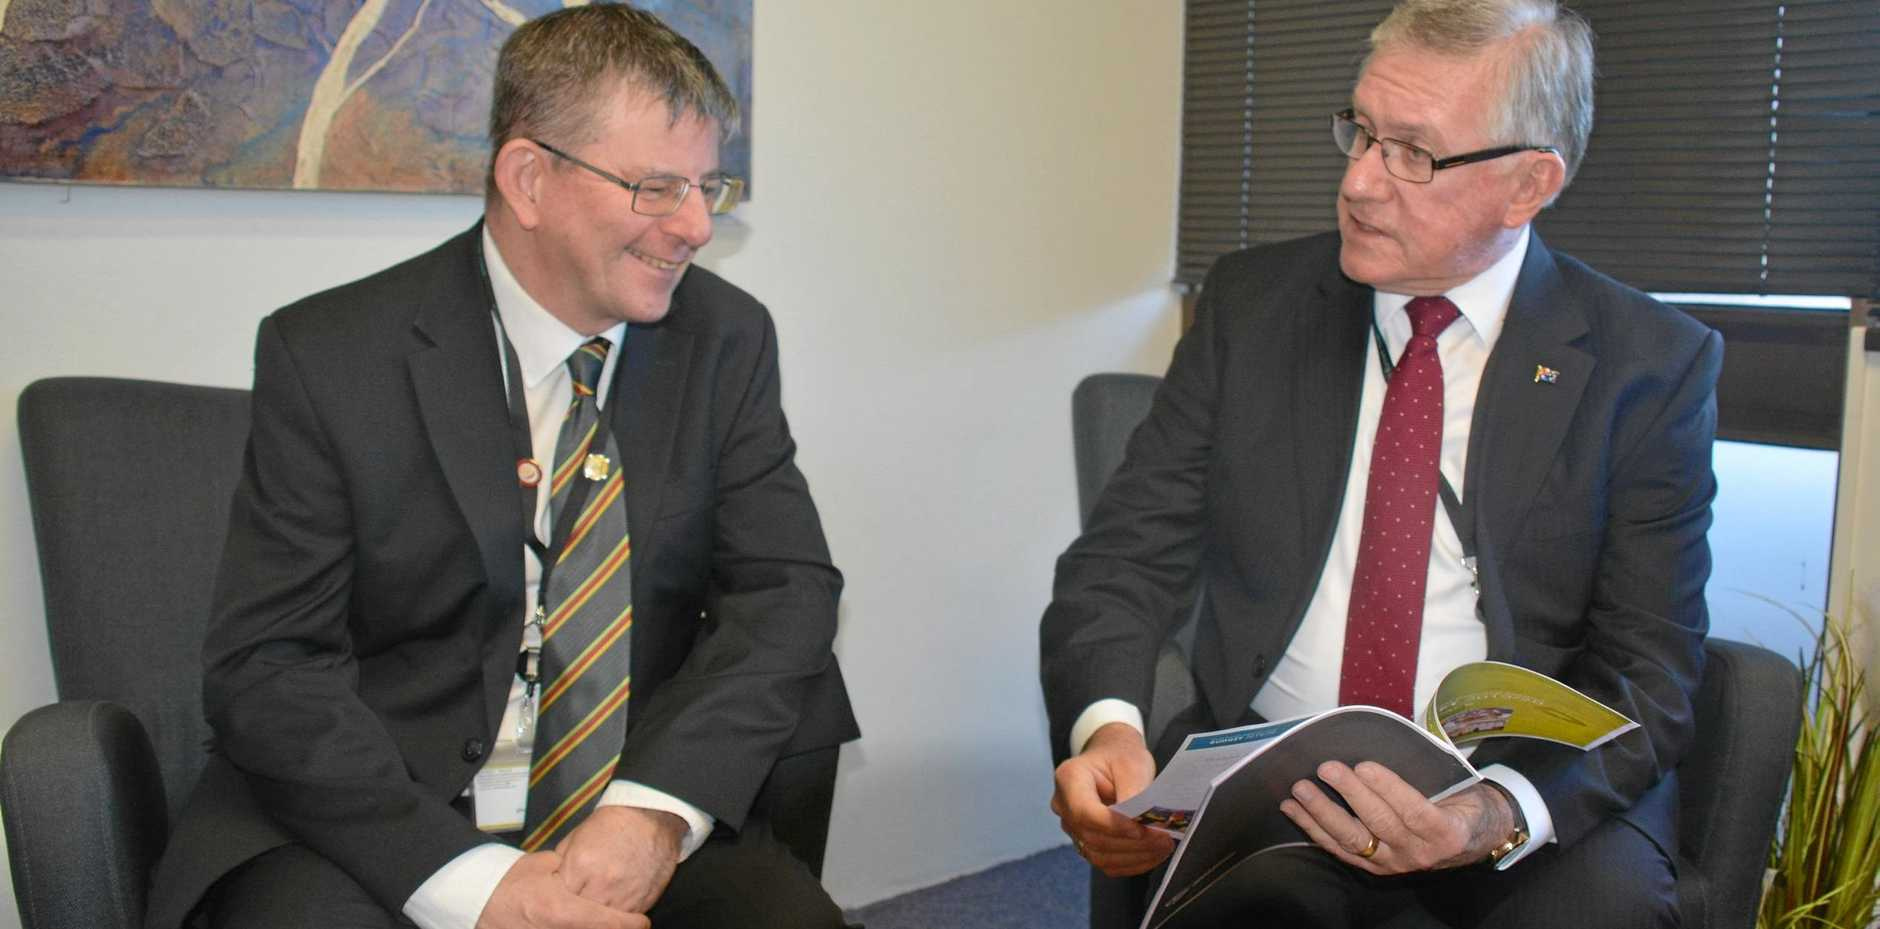 BUDGET TIME: South Burnett Regional Council CEO Mark Pitt and Mayor Keith Campbell discuss the 2019/20 council budget.